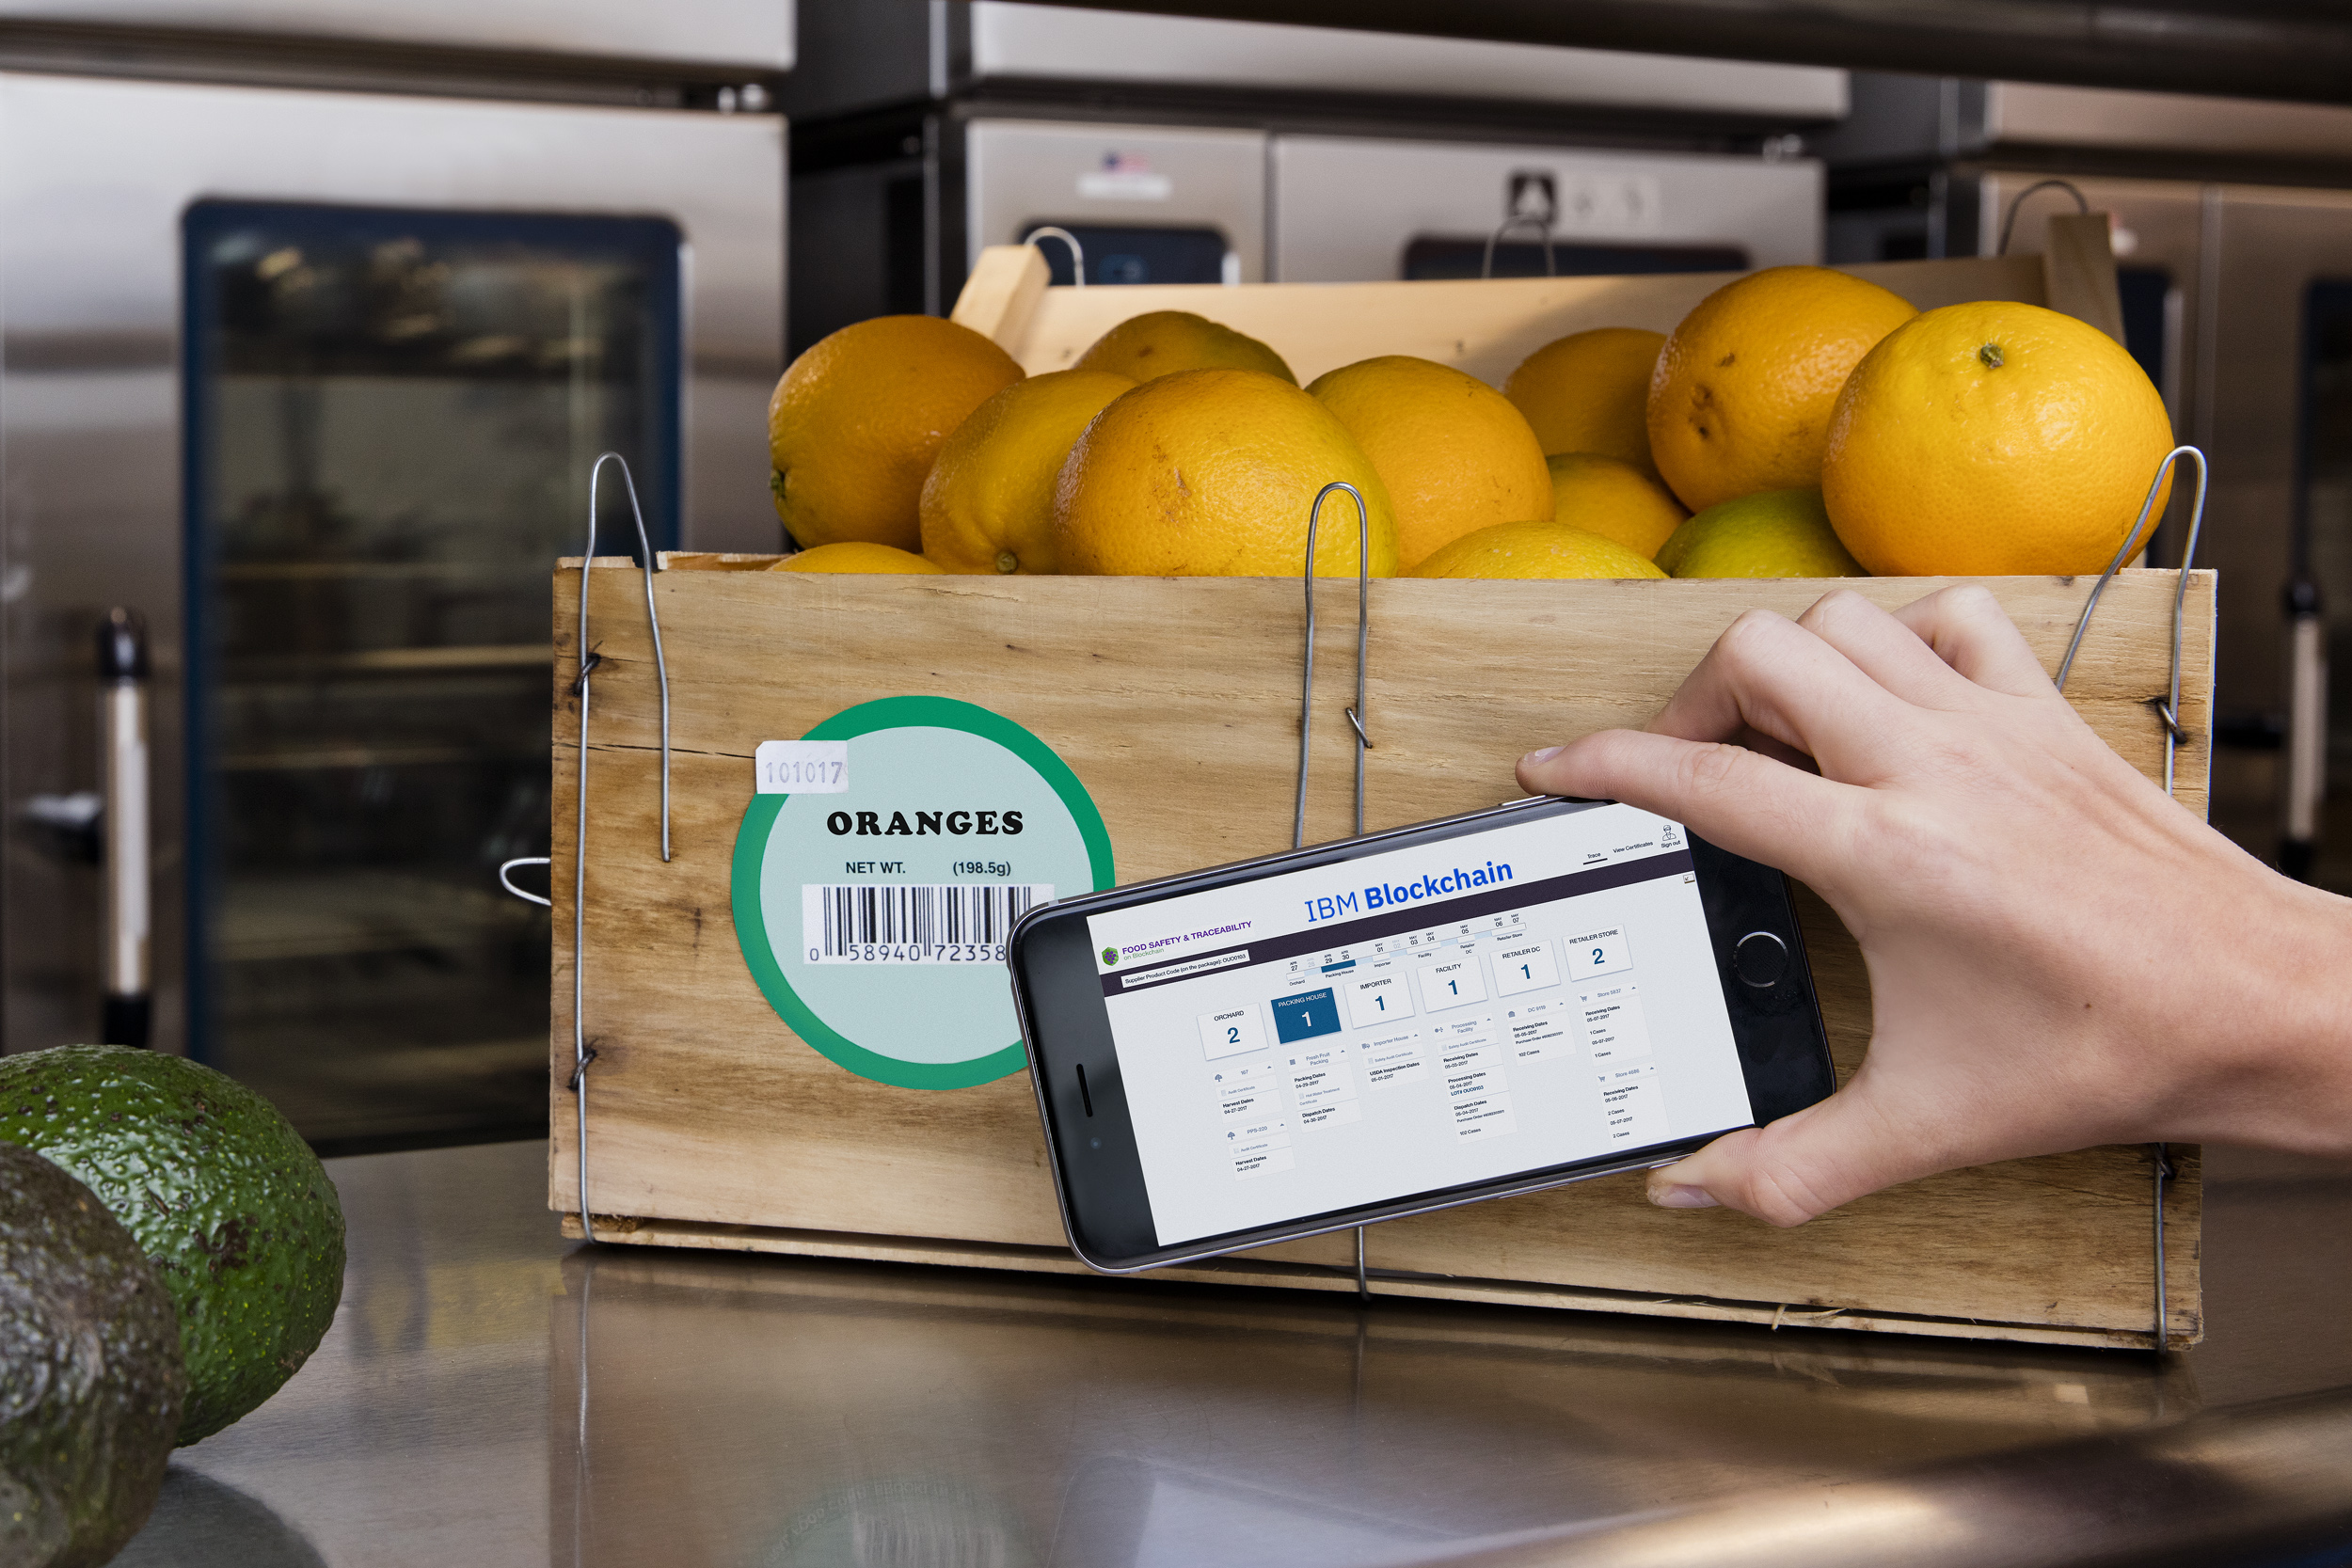 Walmart and 9 Food Giants Team Up on IBM Blockchain Plans | Fortune